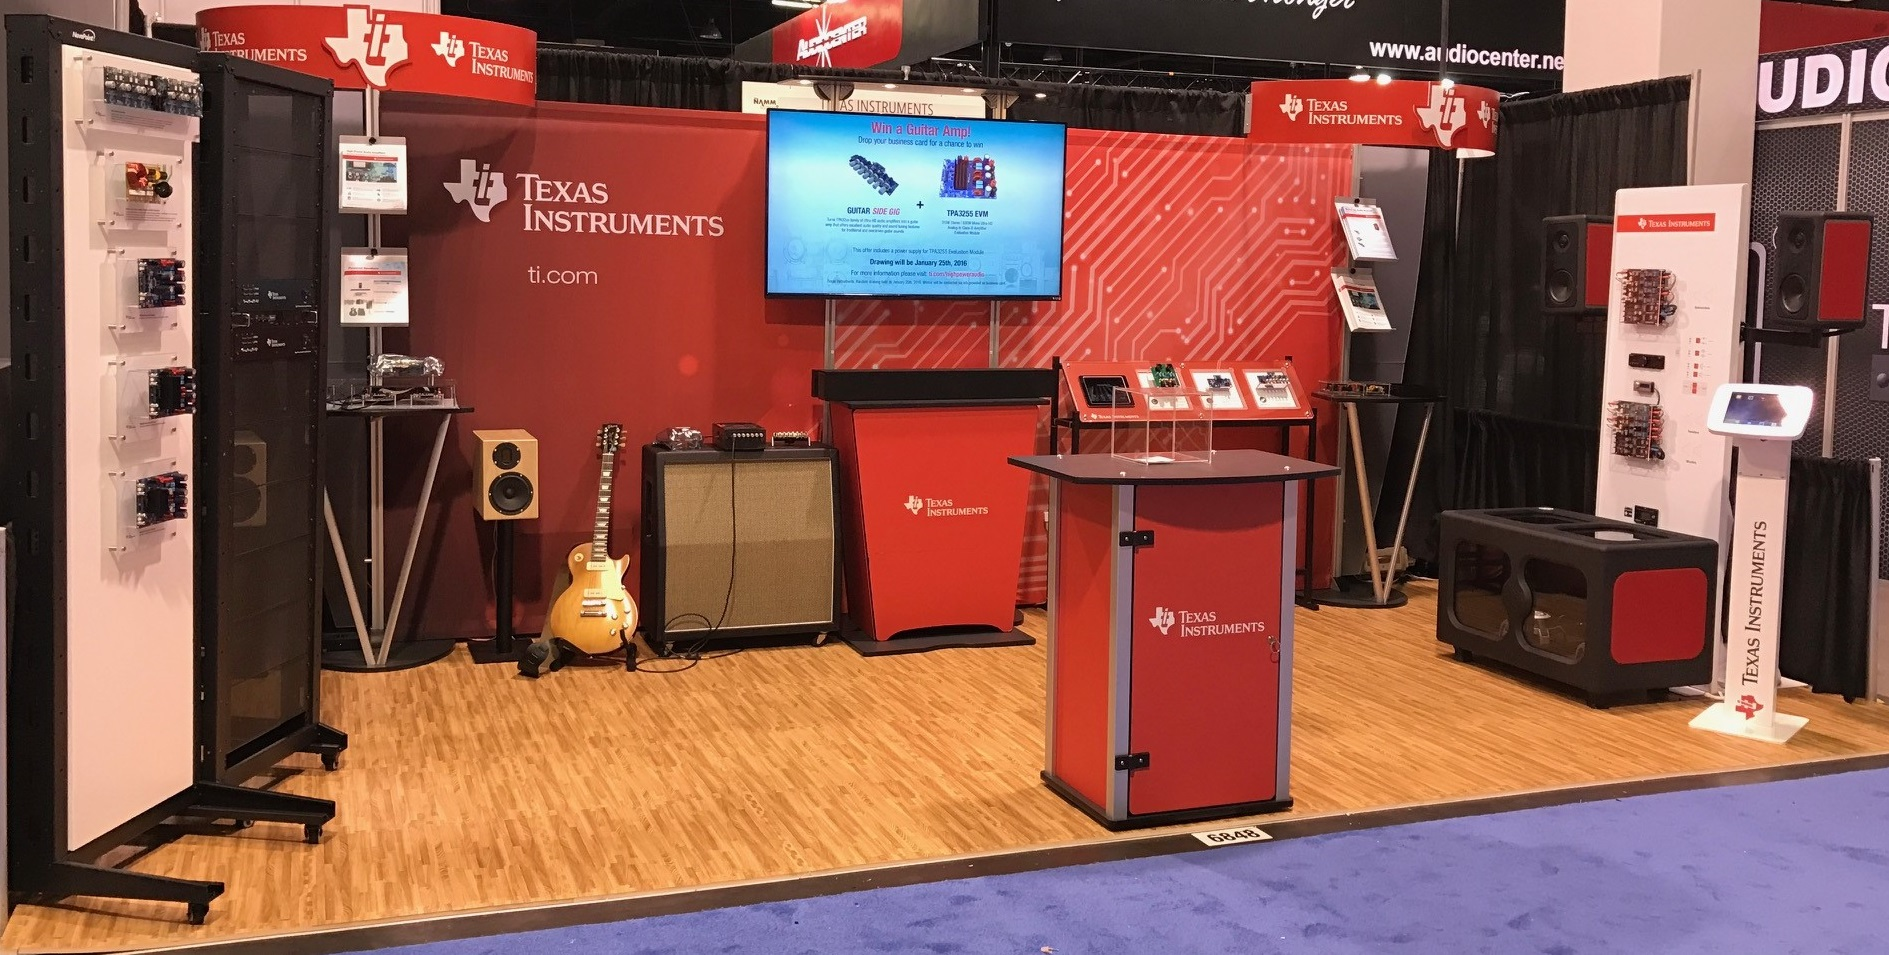 D Printing Exhibition Amp Conference : Professional audio equipment made the most noise at the namm